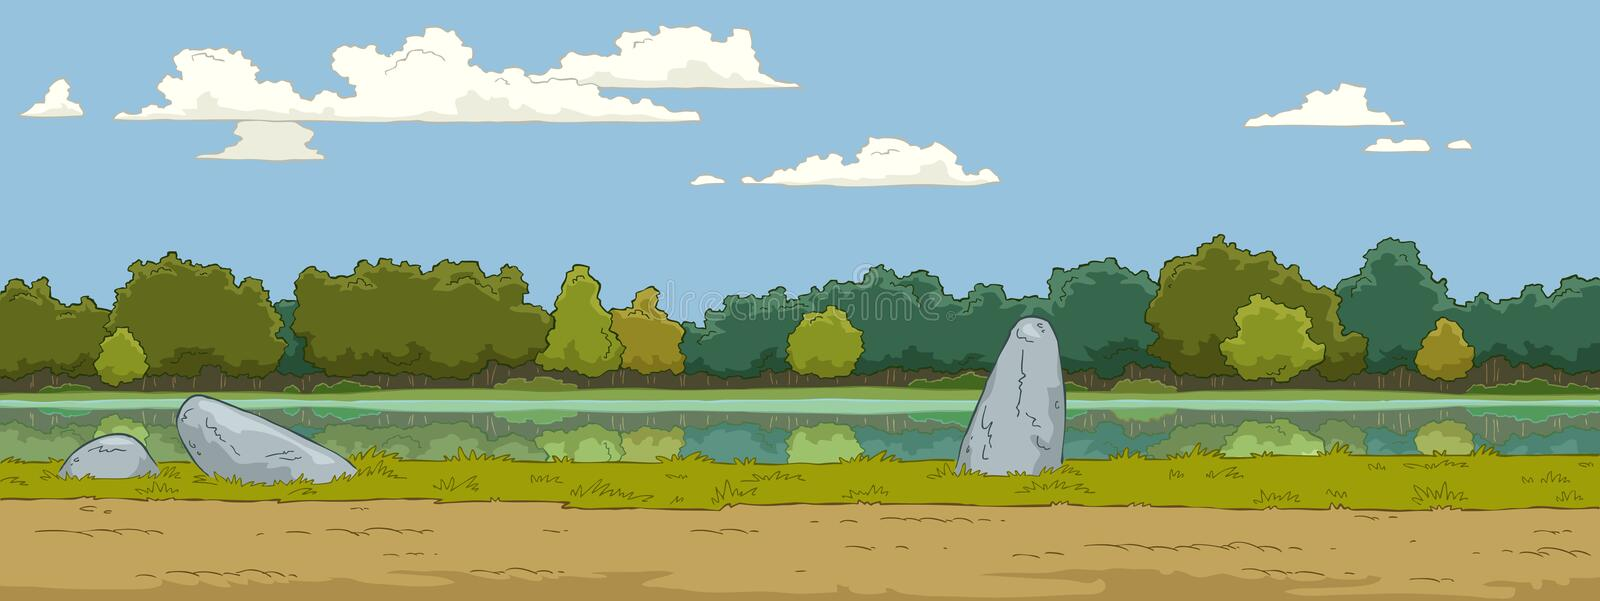 Landscape stock illustration